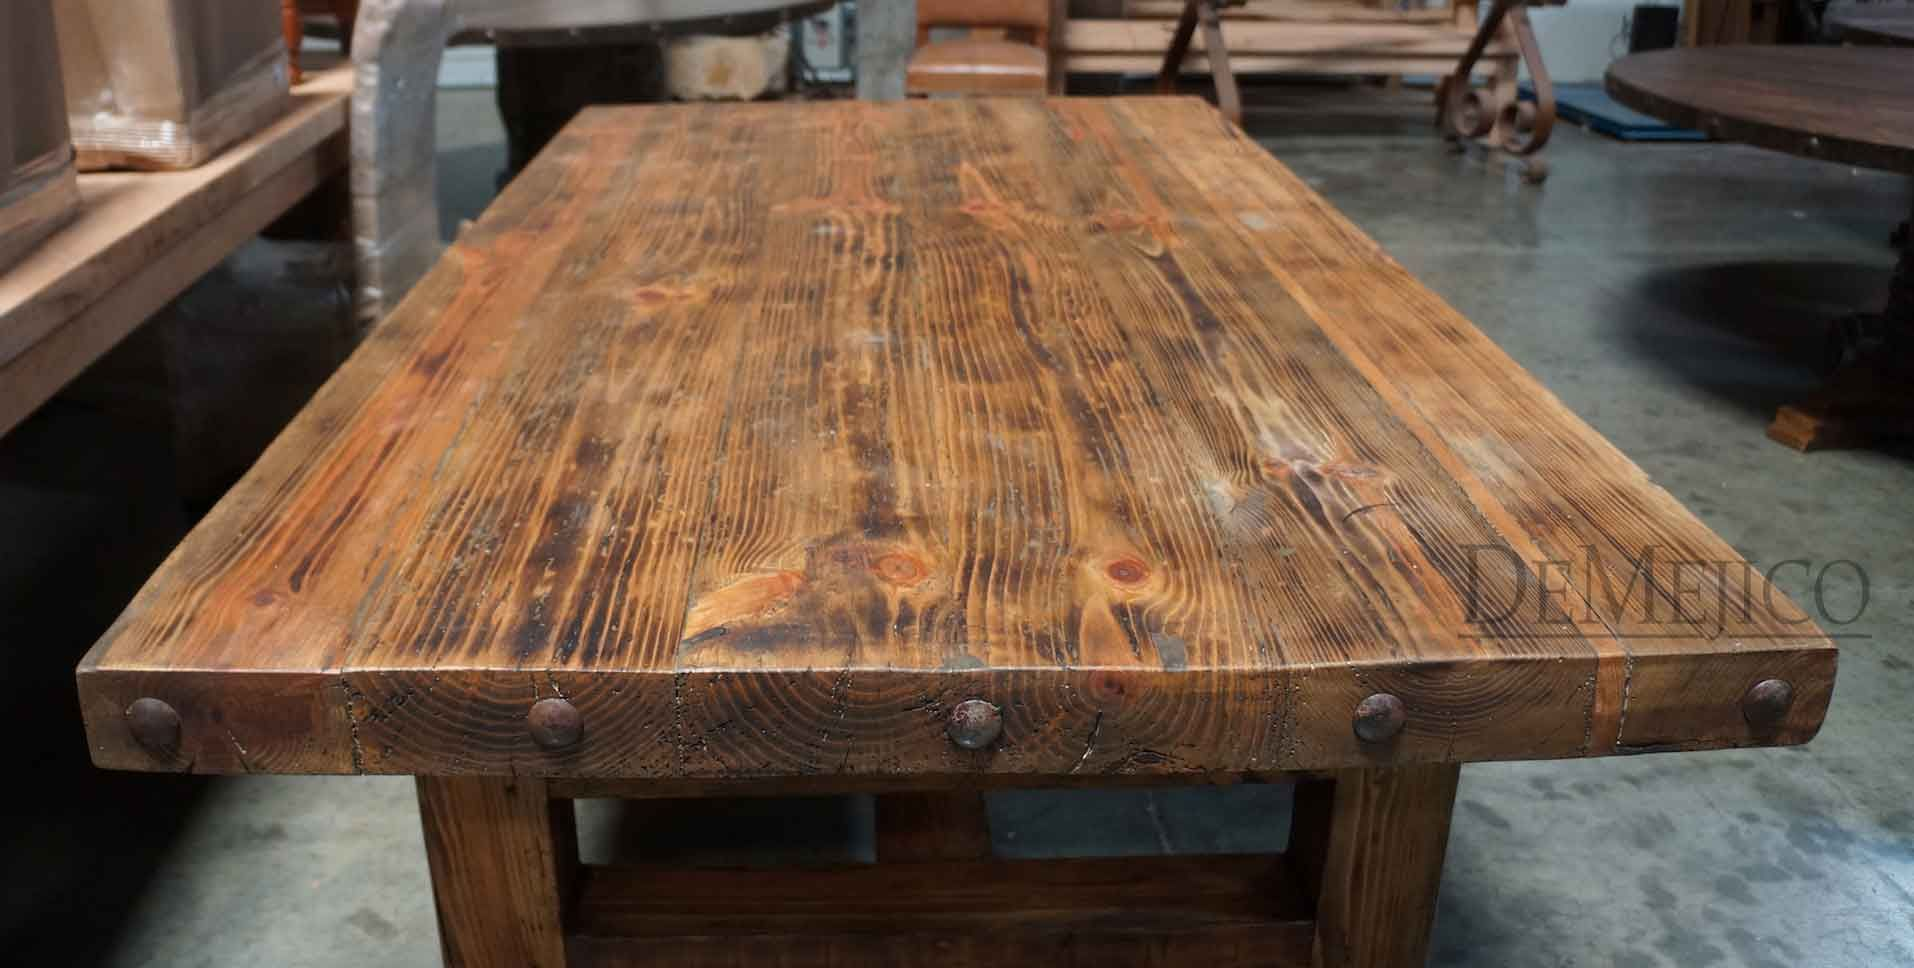 Old wood table demejicodemejico tables pinterest for Wooden table designs images